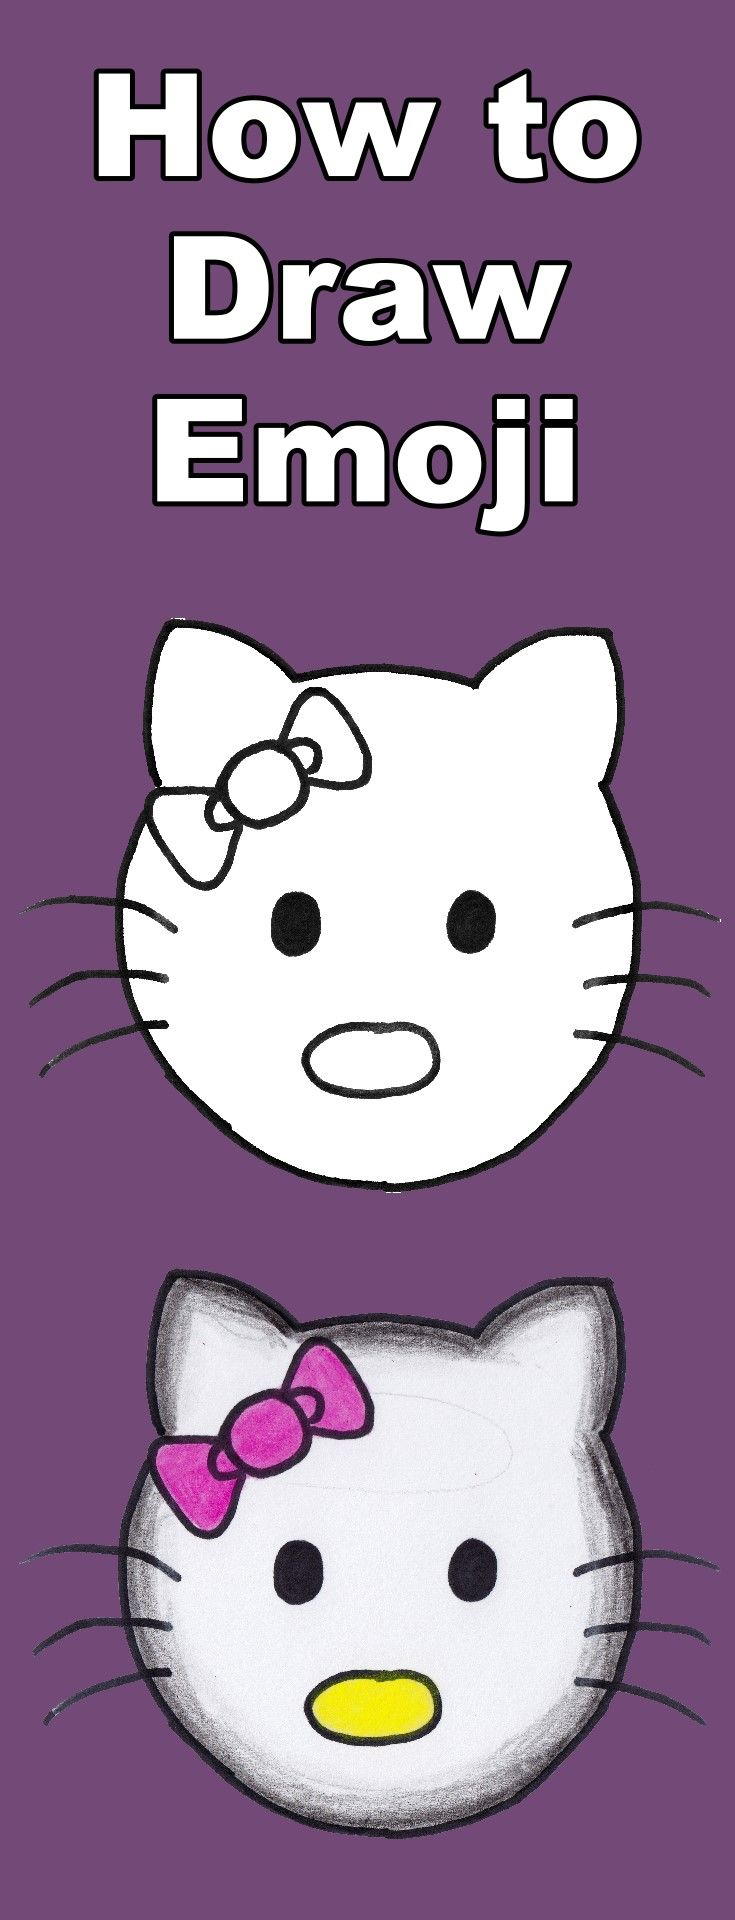 Learn how to draw Hello Kitty as an emoji in this tutorial which includes a teaching video and coloring page download